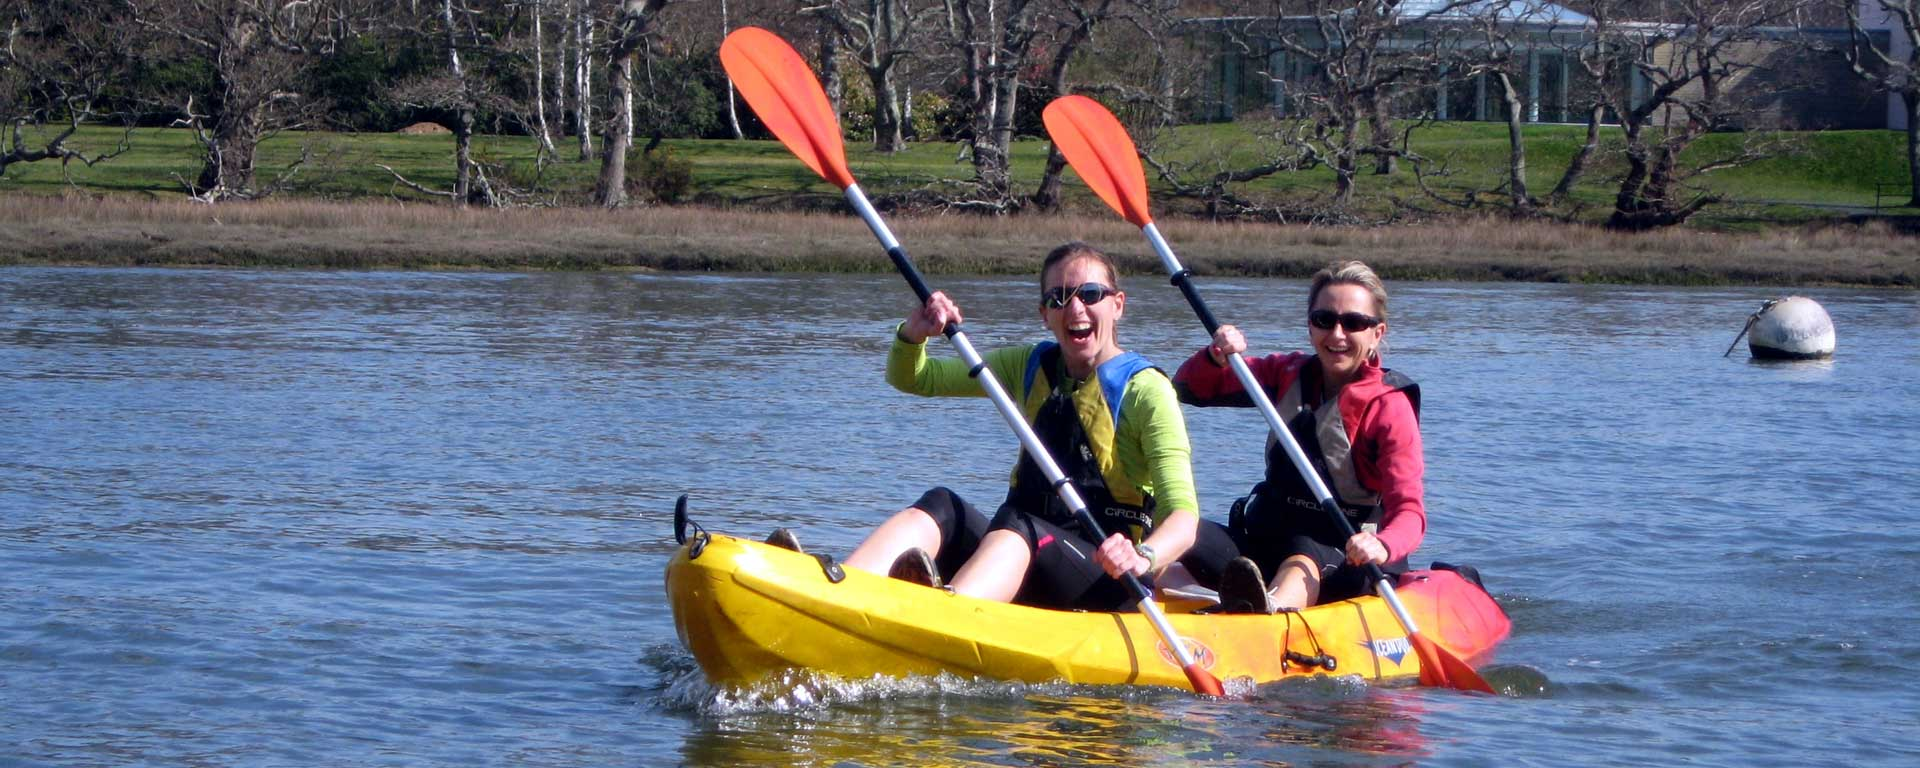 Questars-adventure-race-kayaking